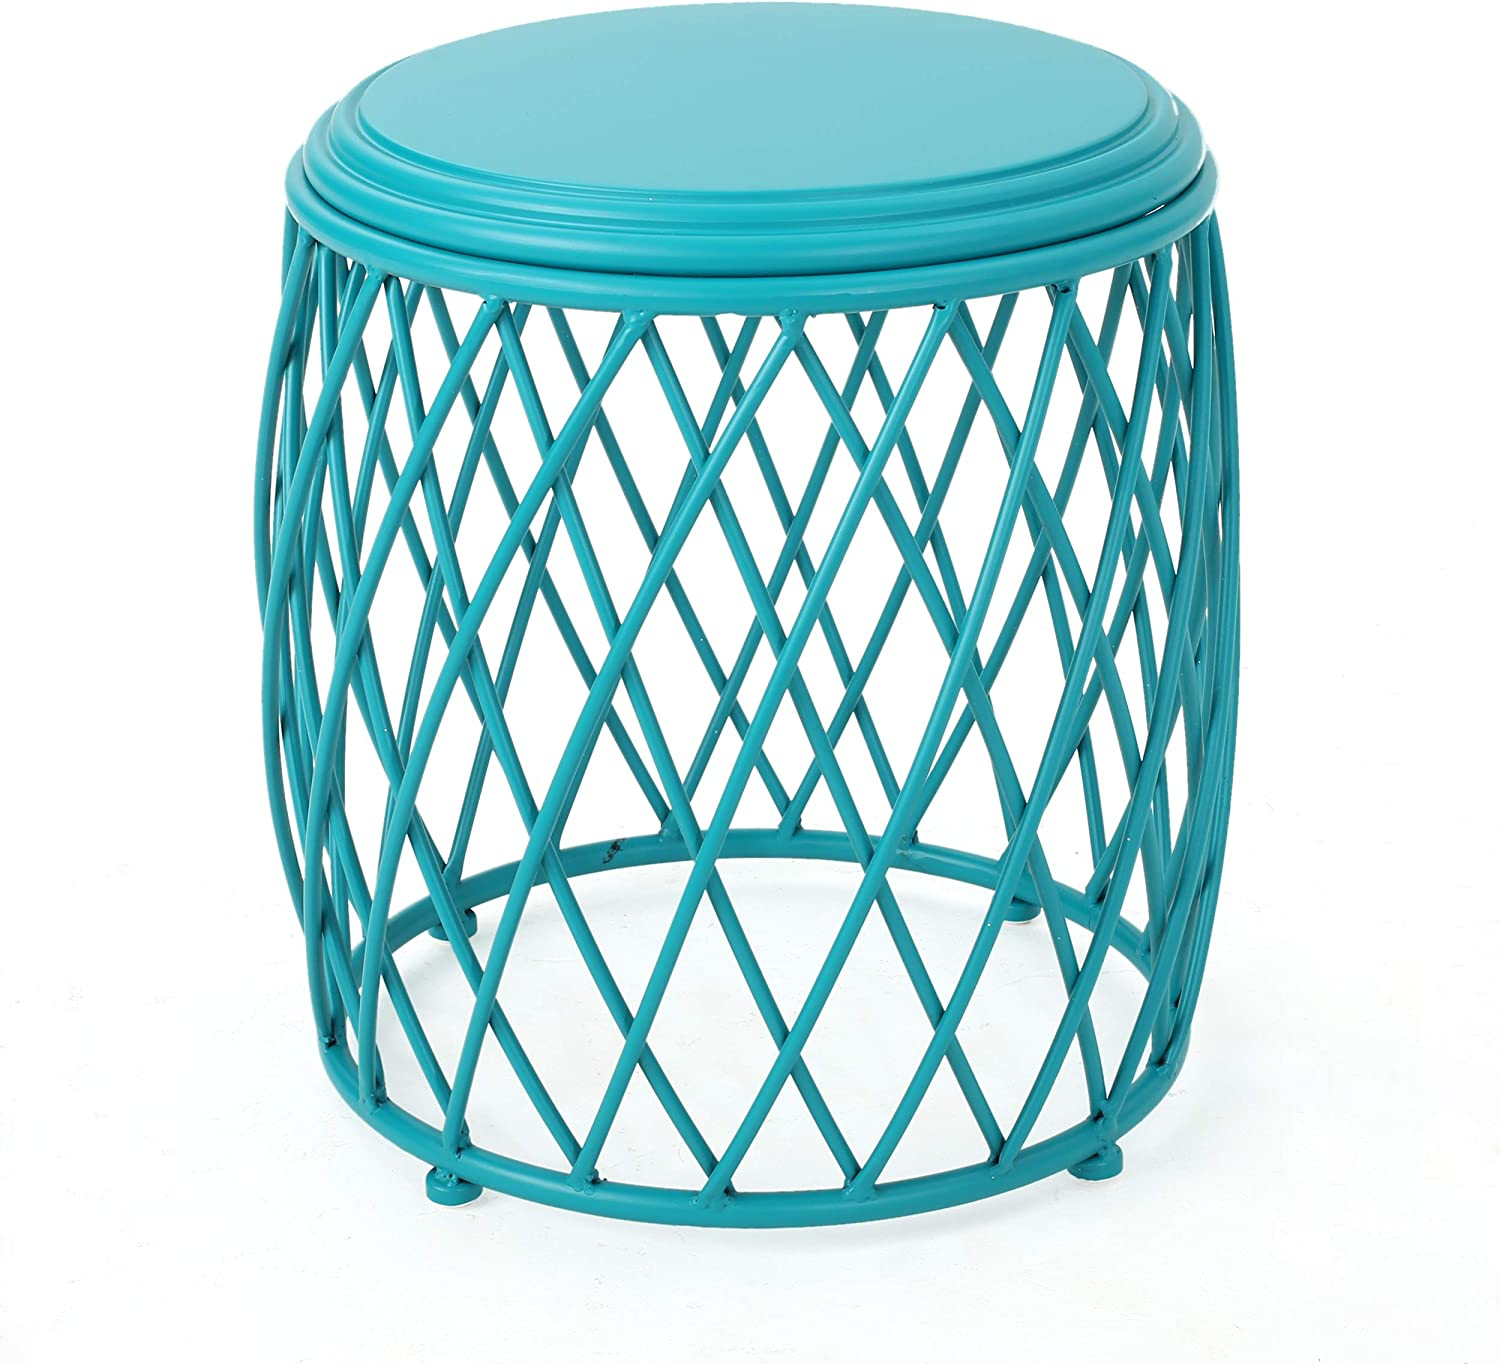 Christopher Knight Home 301949 Alameda Outdoor 15 Inch Lattice Iron Side Table Matte Teal , 15